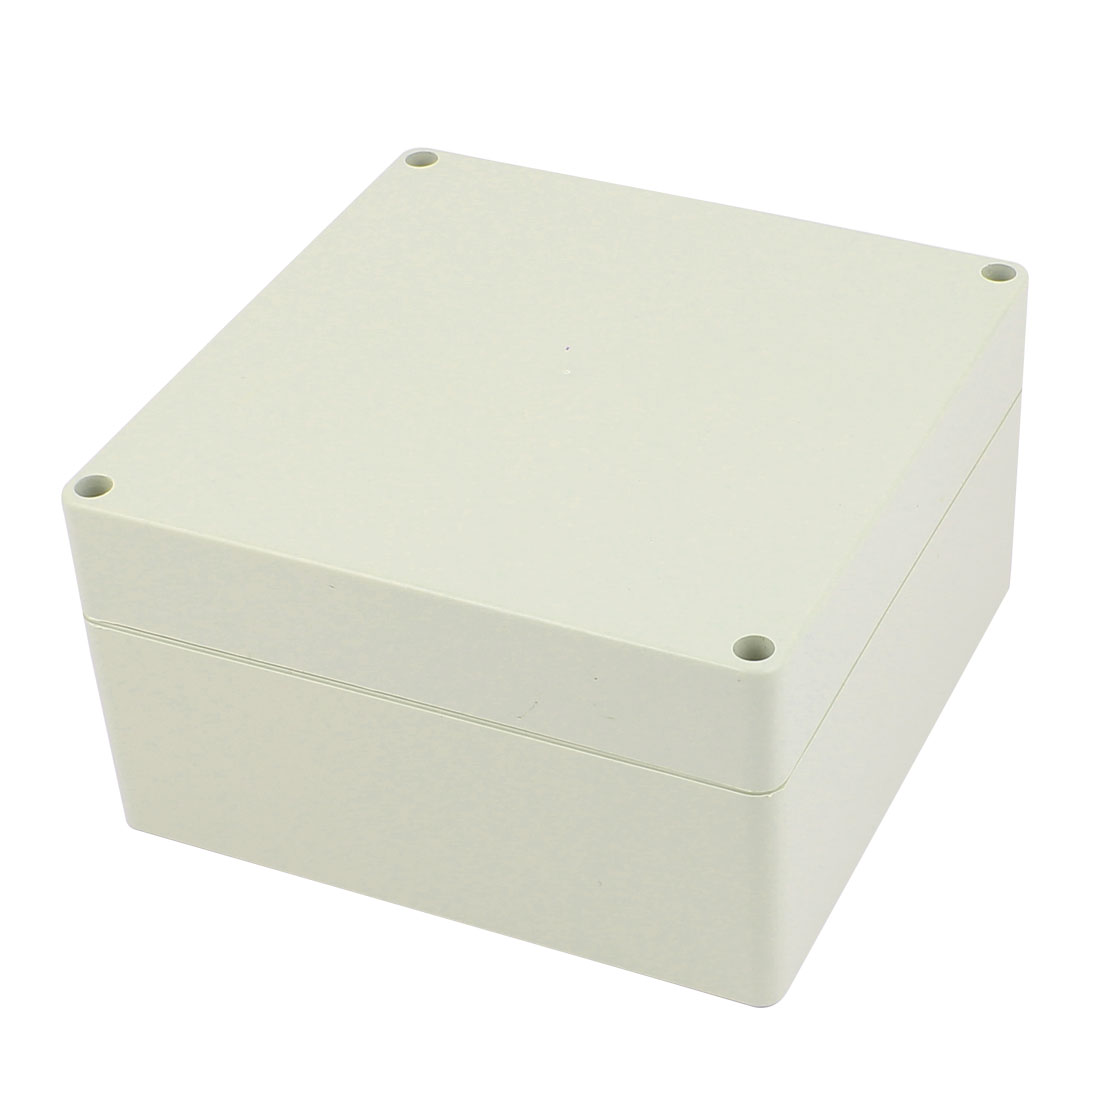 Dustproof IP65 Junction Box DIY Terminal Connection Enclosure Adaptable 152mm x 152mm x 82mm